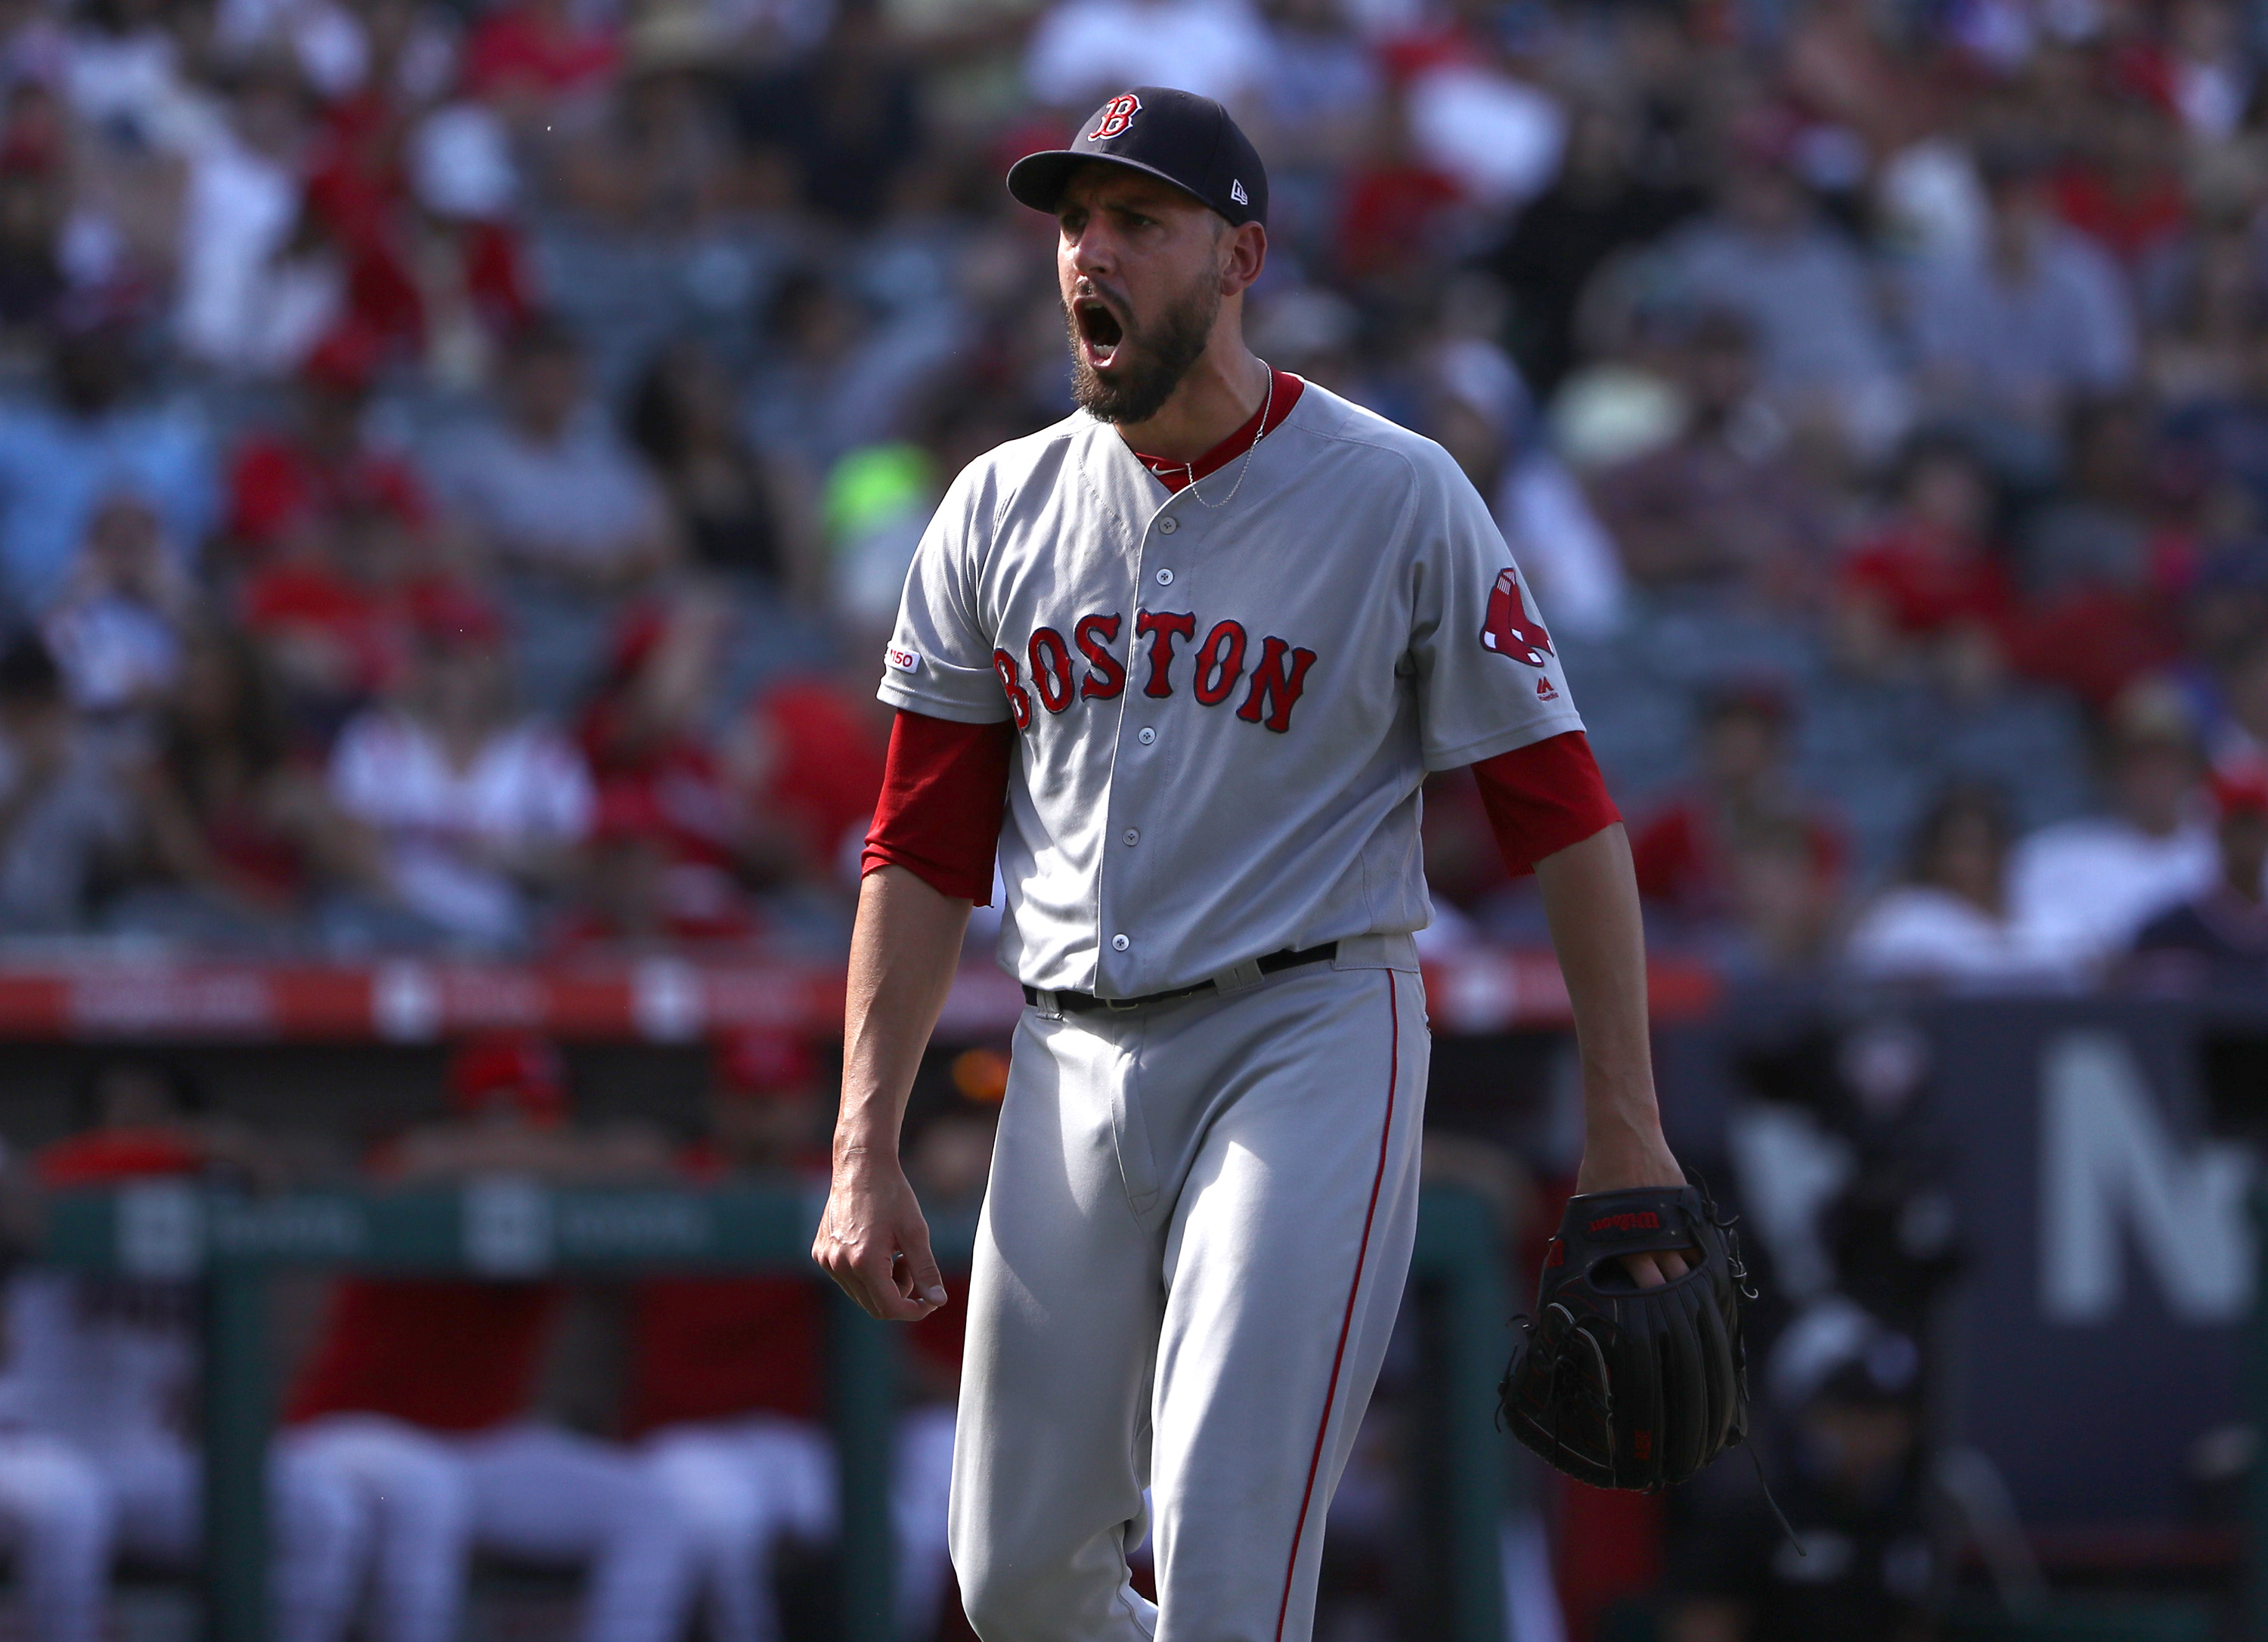 It's not the blown saves dragging down Red Sox, it's this.